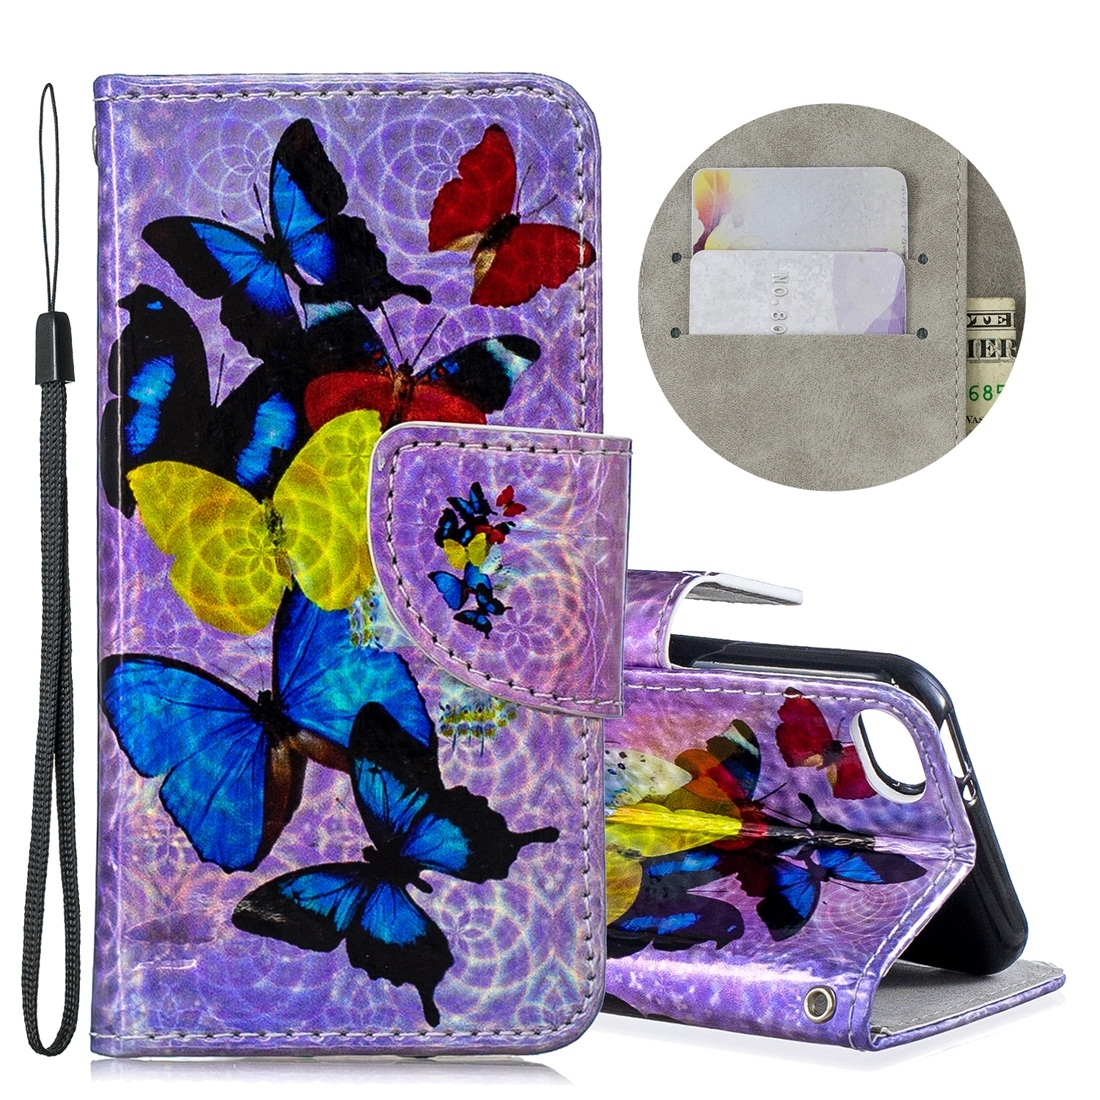 Dazzle Colorful Leather Case w/ Slim Profile & Lanyard For iPod Touch 5/6 (Seven Butterflies)